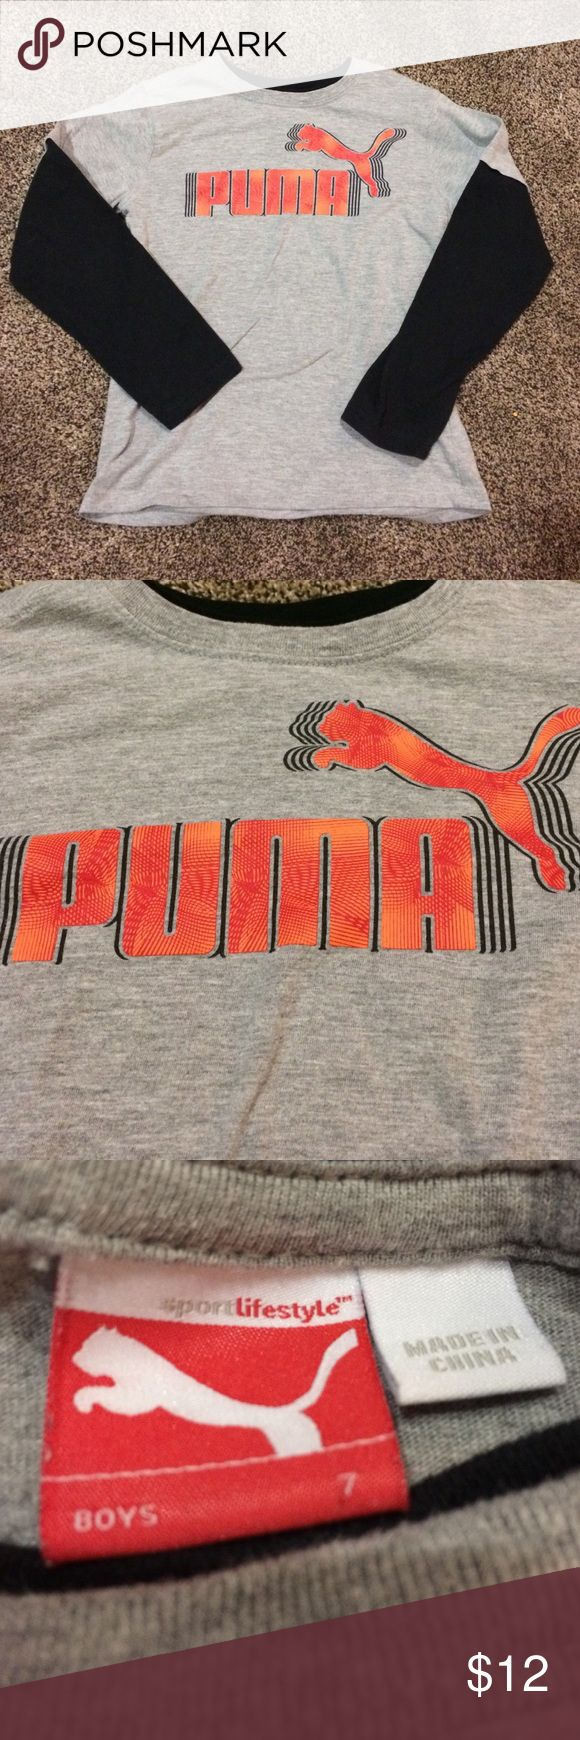 Puma shirt Long sleeve Puma shirt. Excellent condition!!! Hardly worn!! Puma Shirts & Tops Tees - Long Sleeve